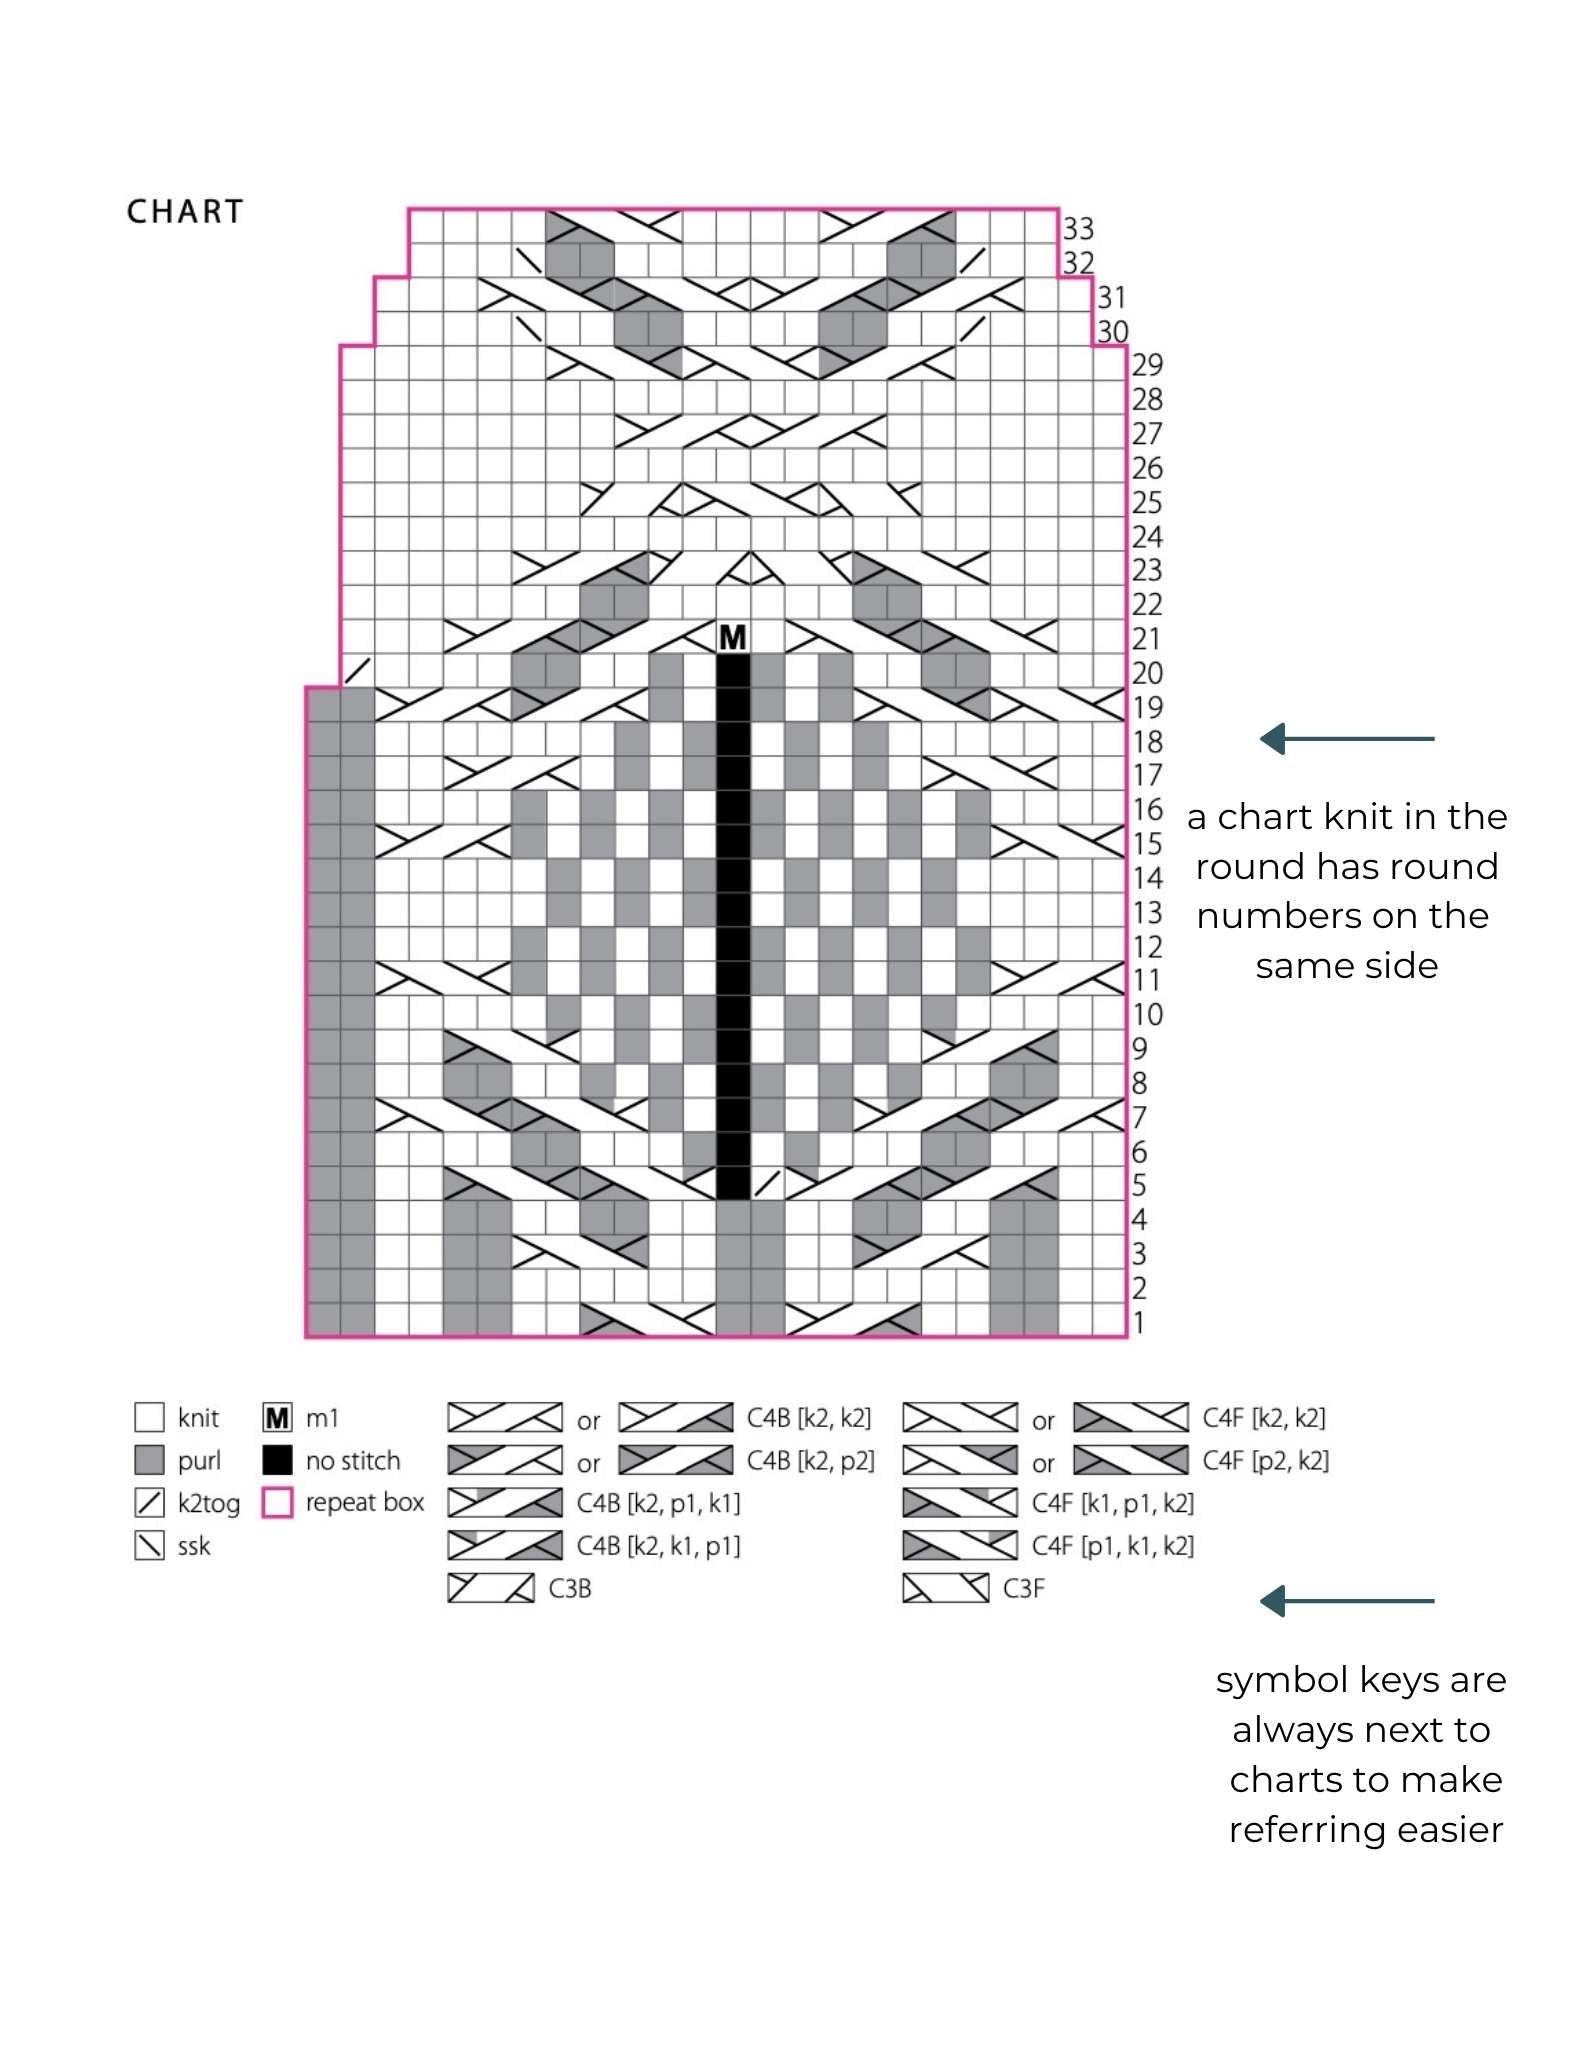 a screenshot of a chart used in a knitting pattern with a key of symbols underneath